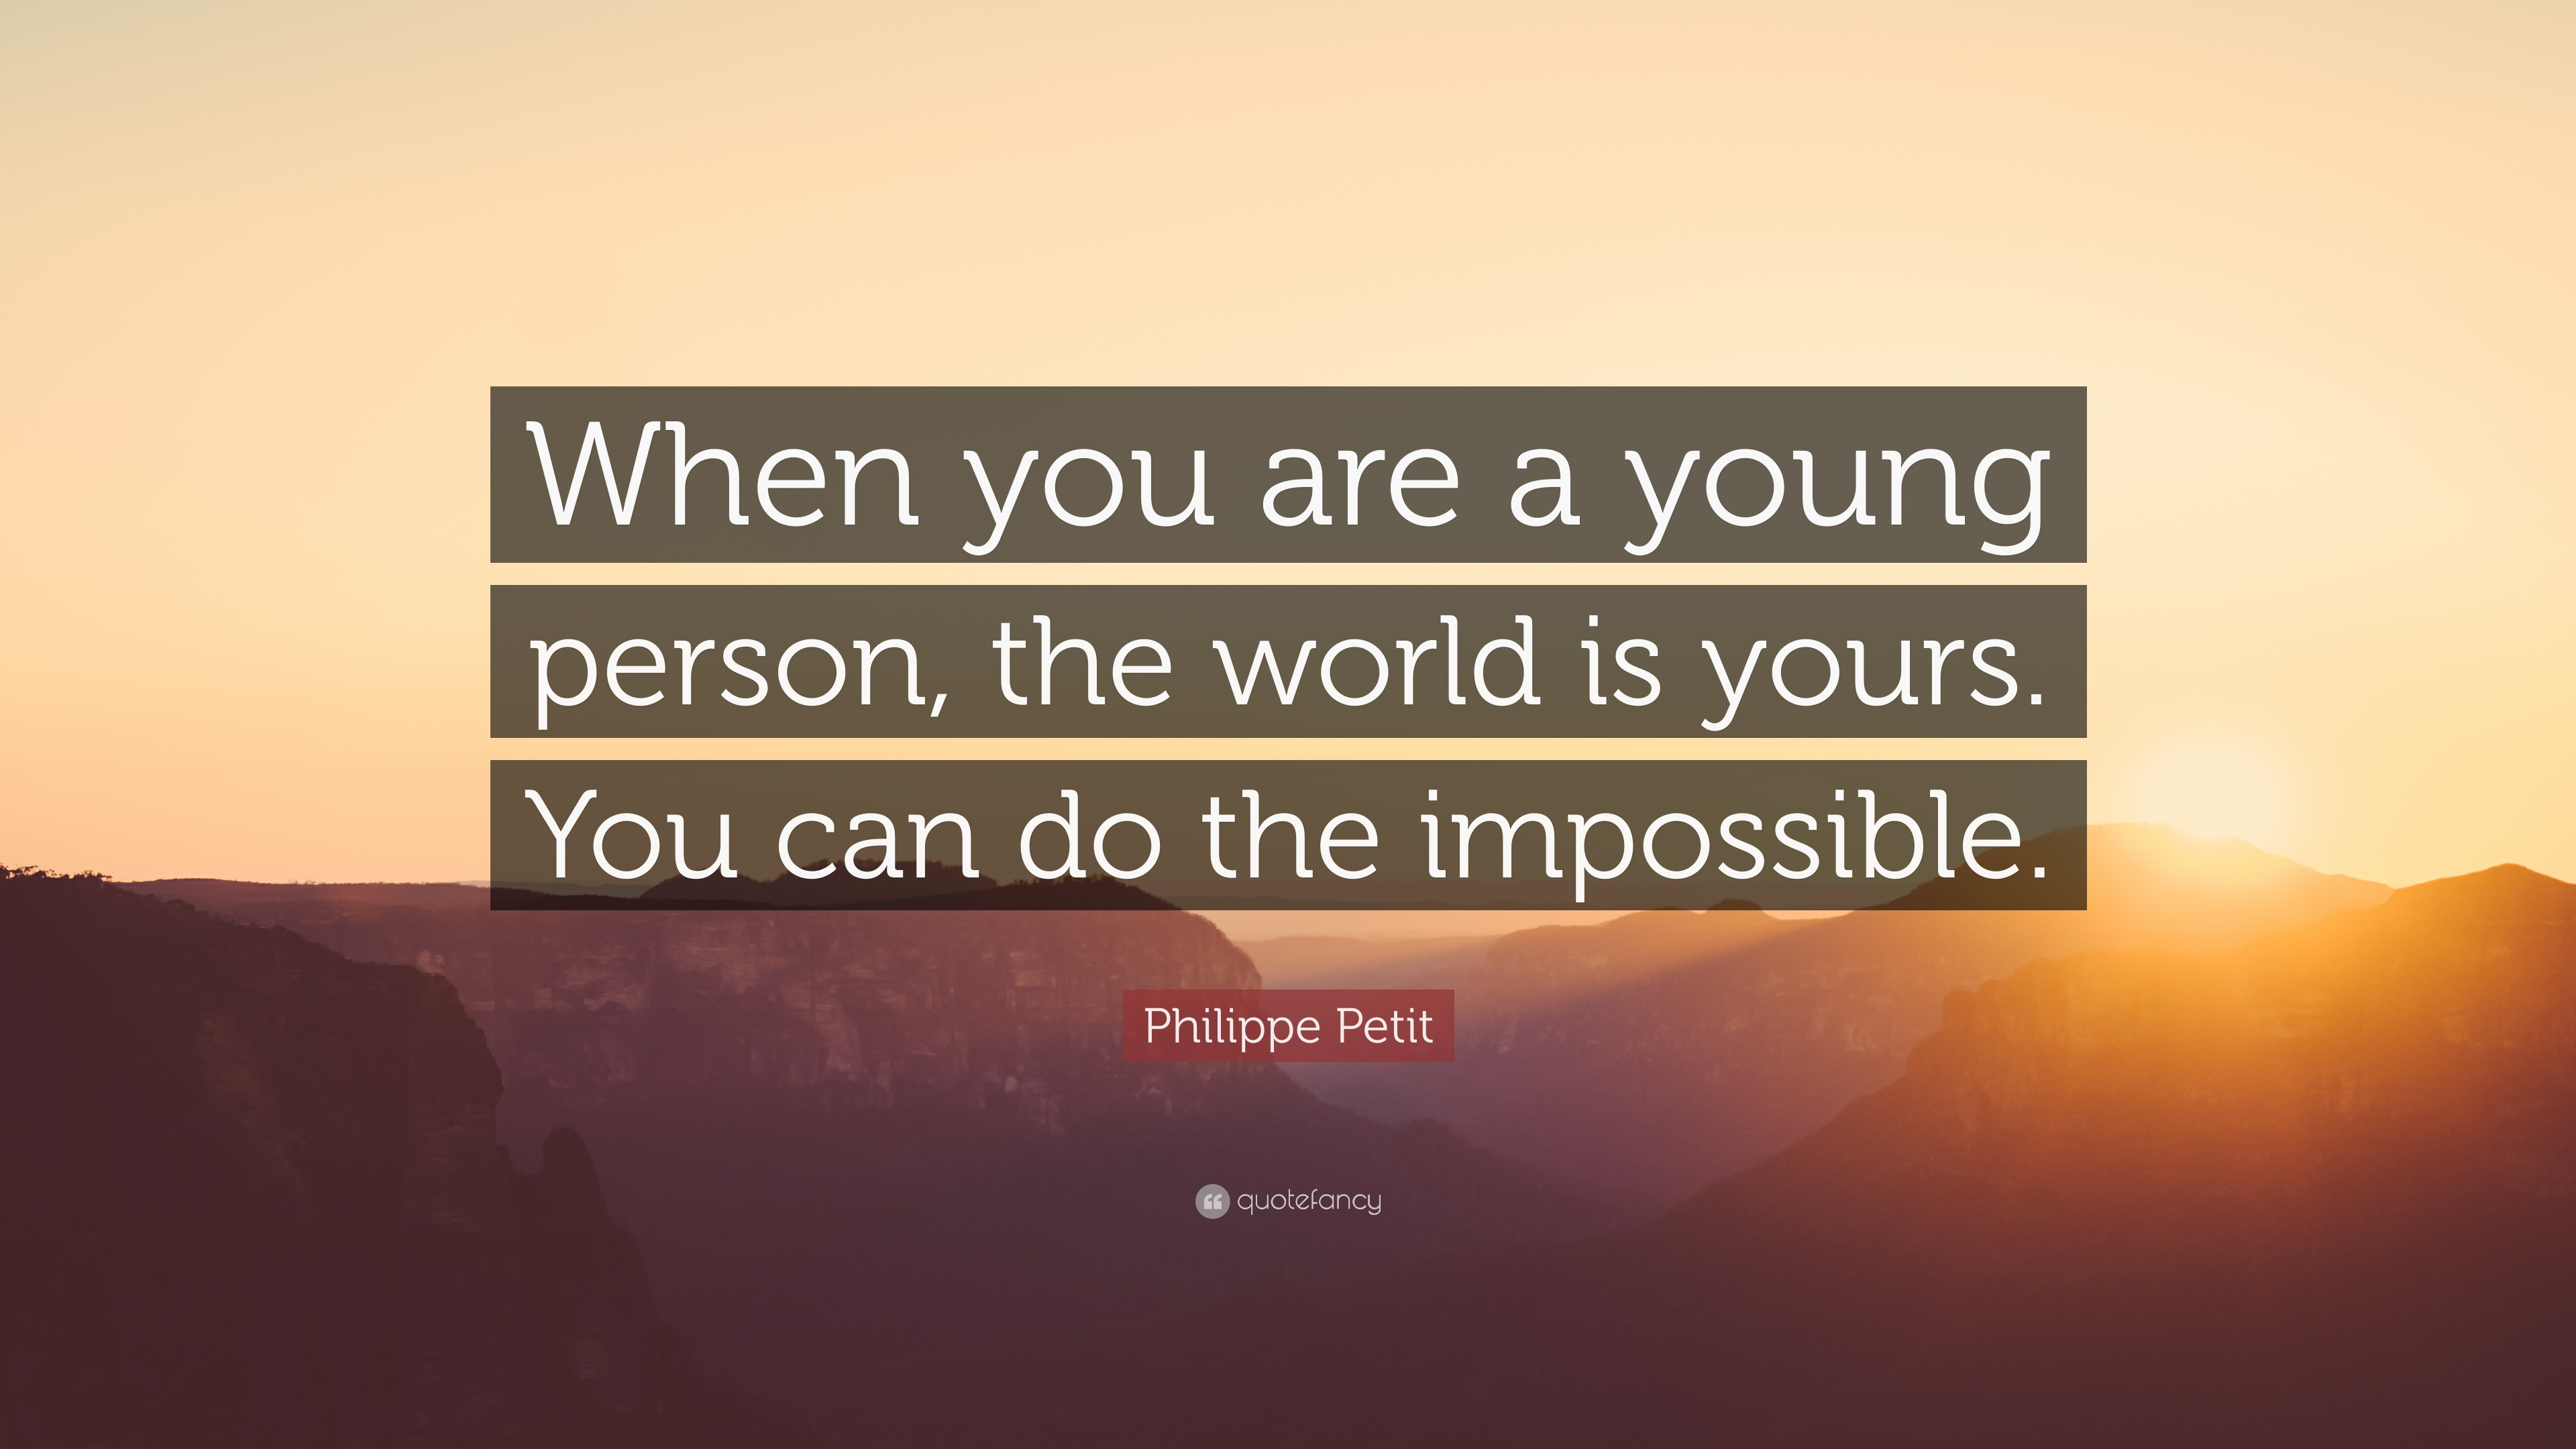 Philippe Petit Quote When You Are A Young Person The World Is Yours